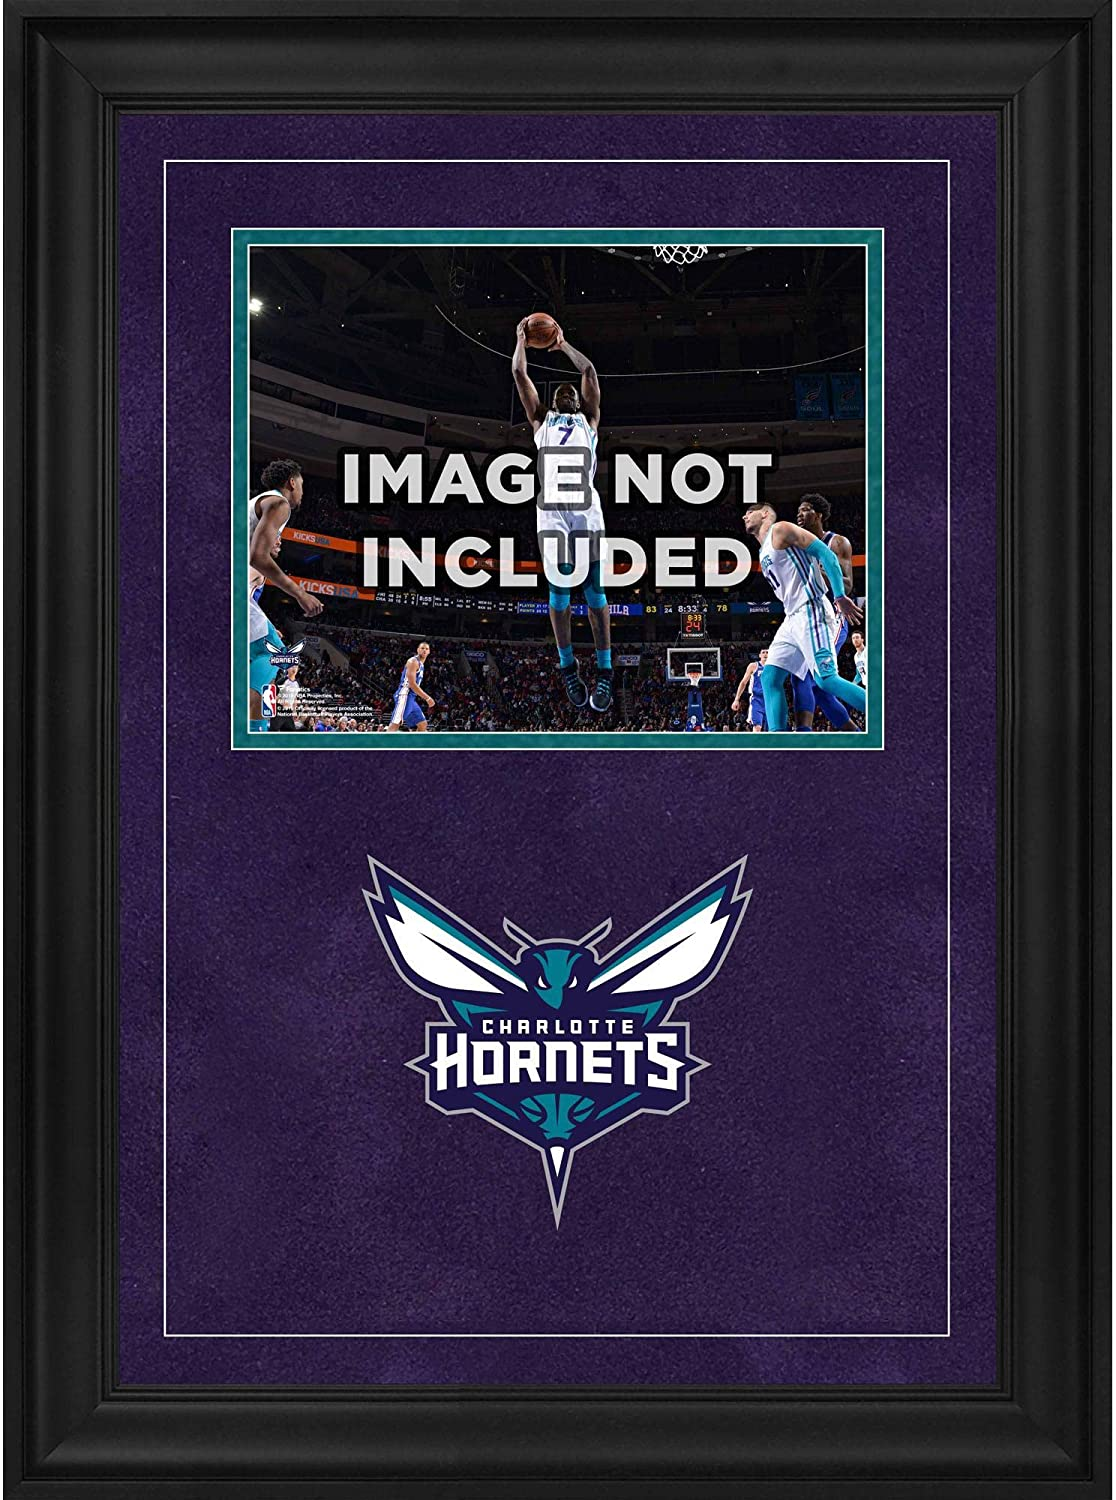 Fanatics Authentic NBA Charlotte Hornets Charlotte Hornets Deluxe 8 x 10 Horizontal Photograph Frame with Team Logo